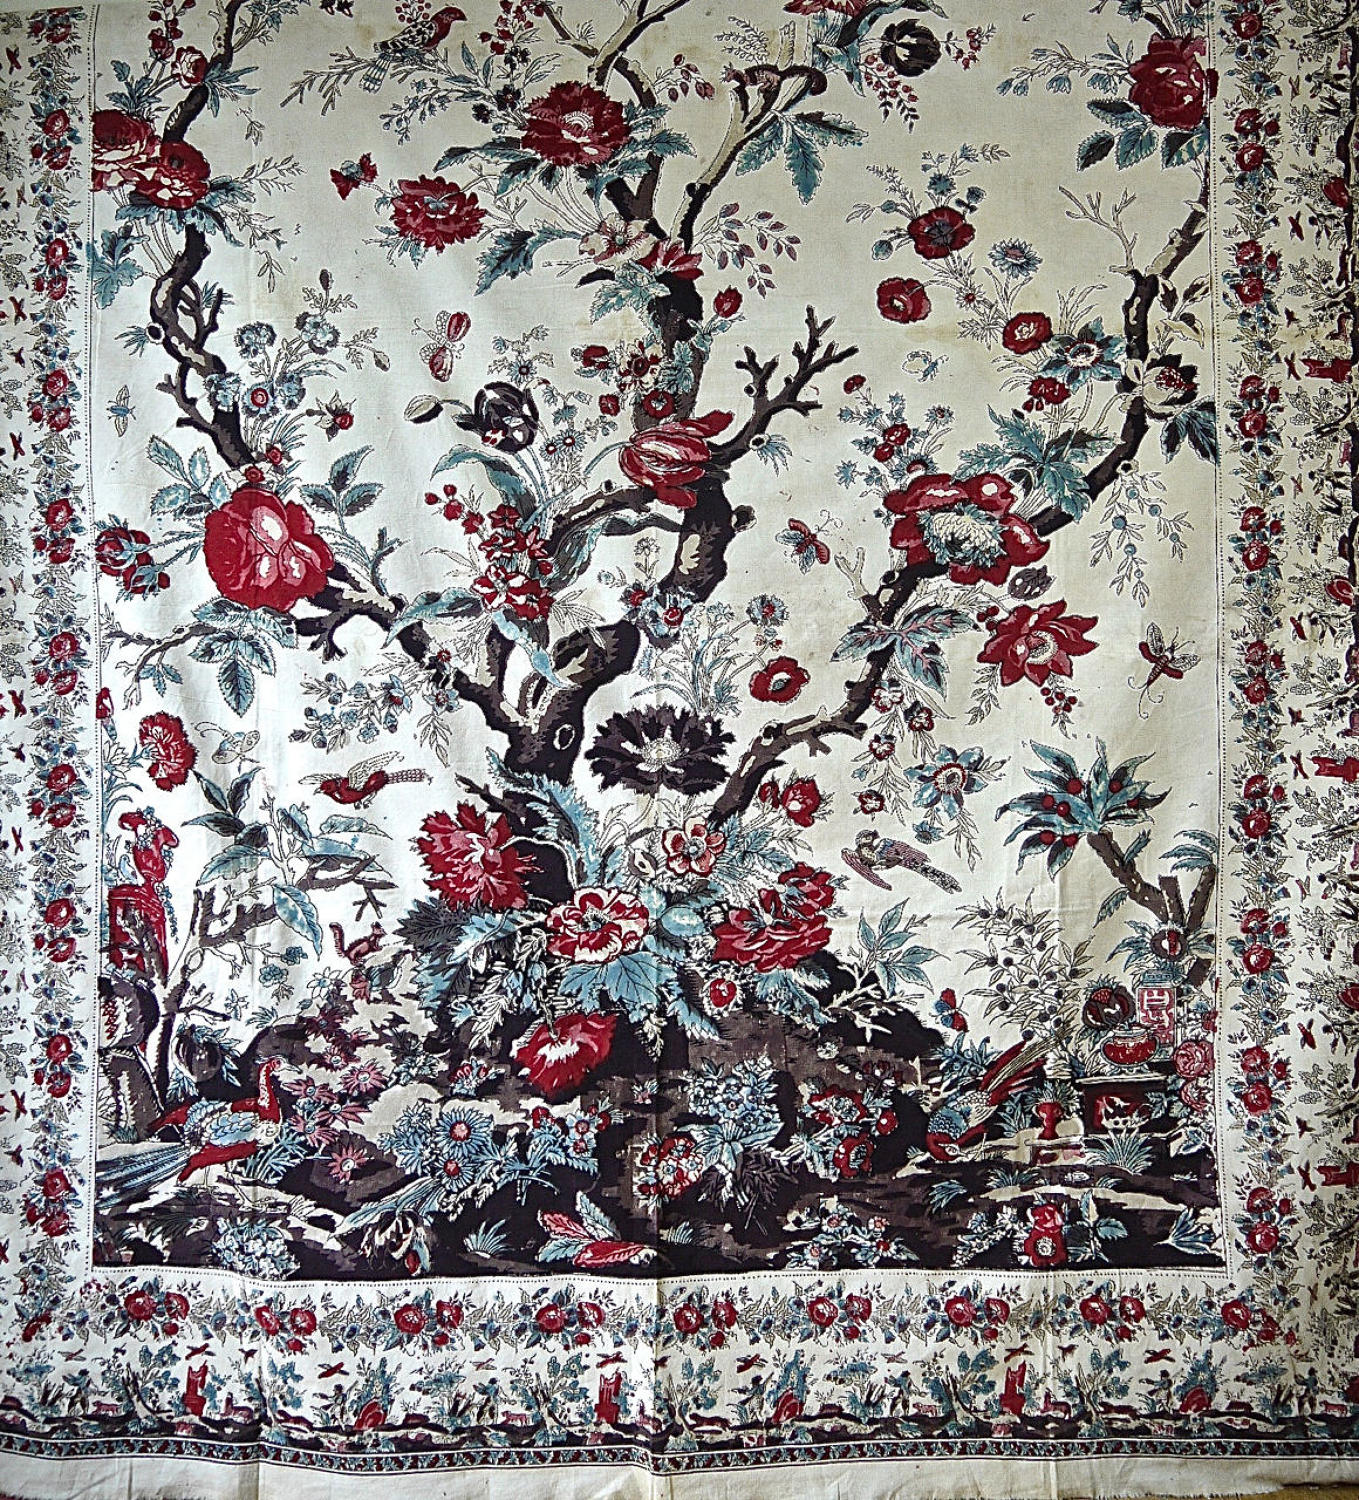 Tree Of Life Mezzarro Cotton Panel 1840-50